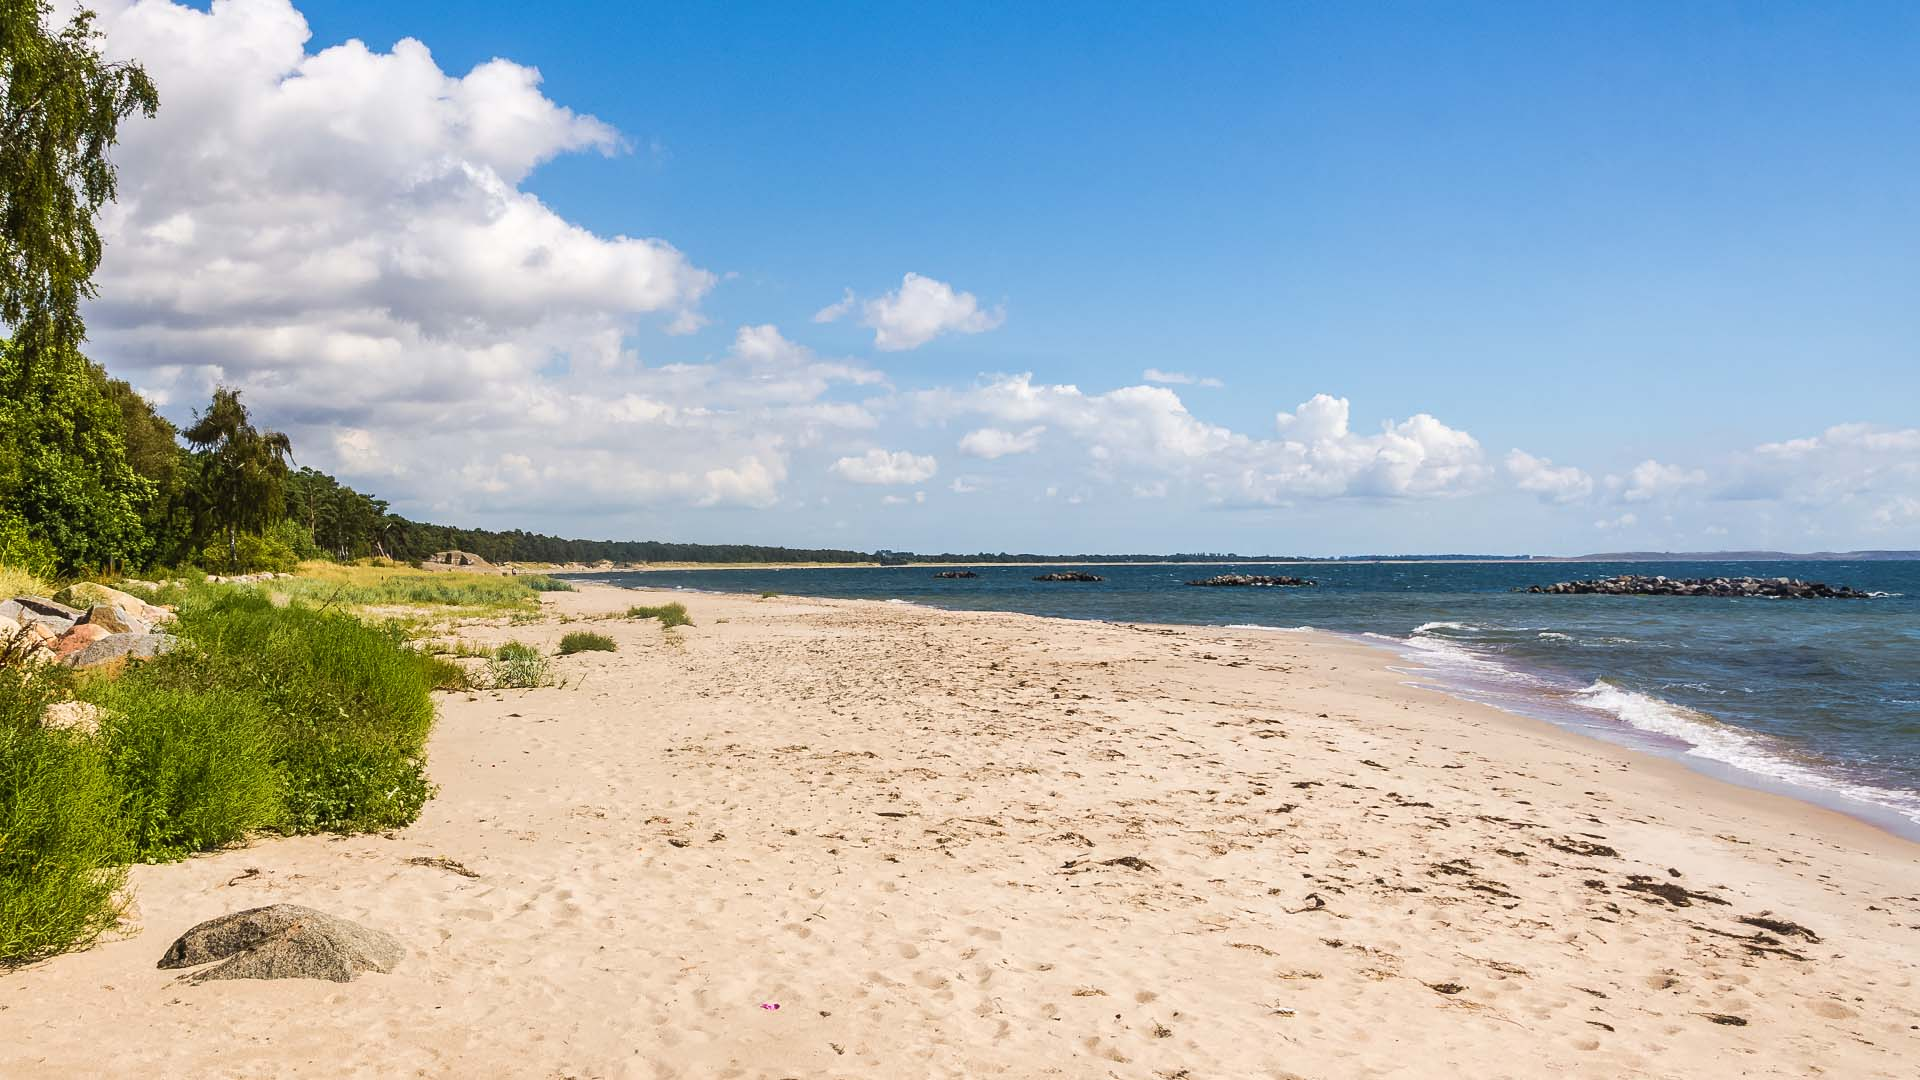 Sandhammaren beach in Skane, Sweden